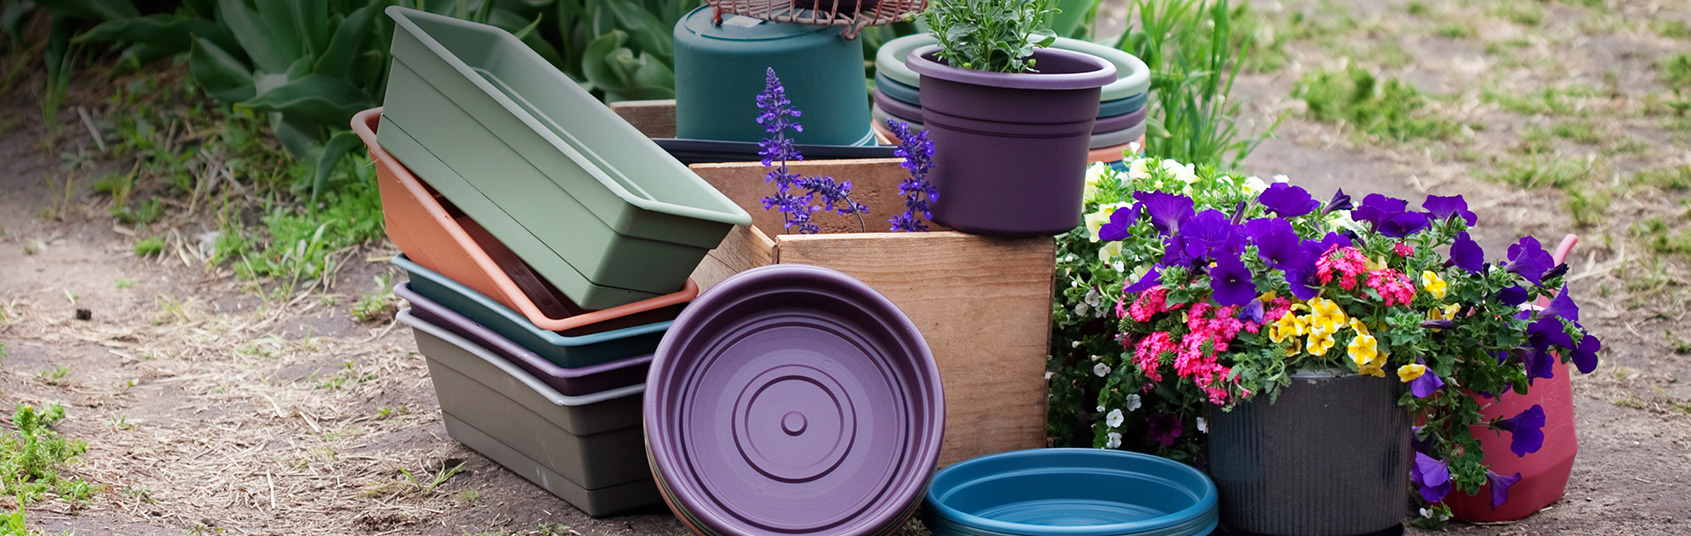 Planters. Gardening Pots  Planters   Accessories   Amazon com